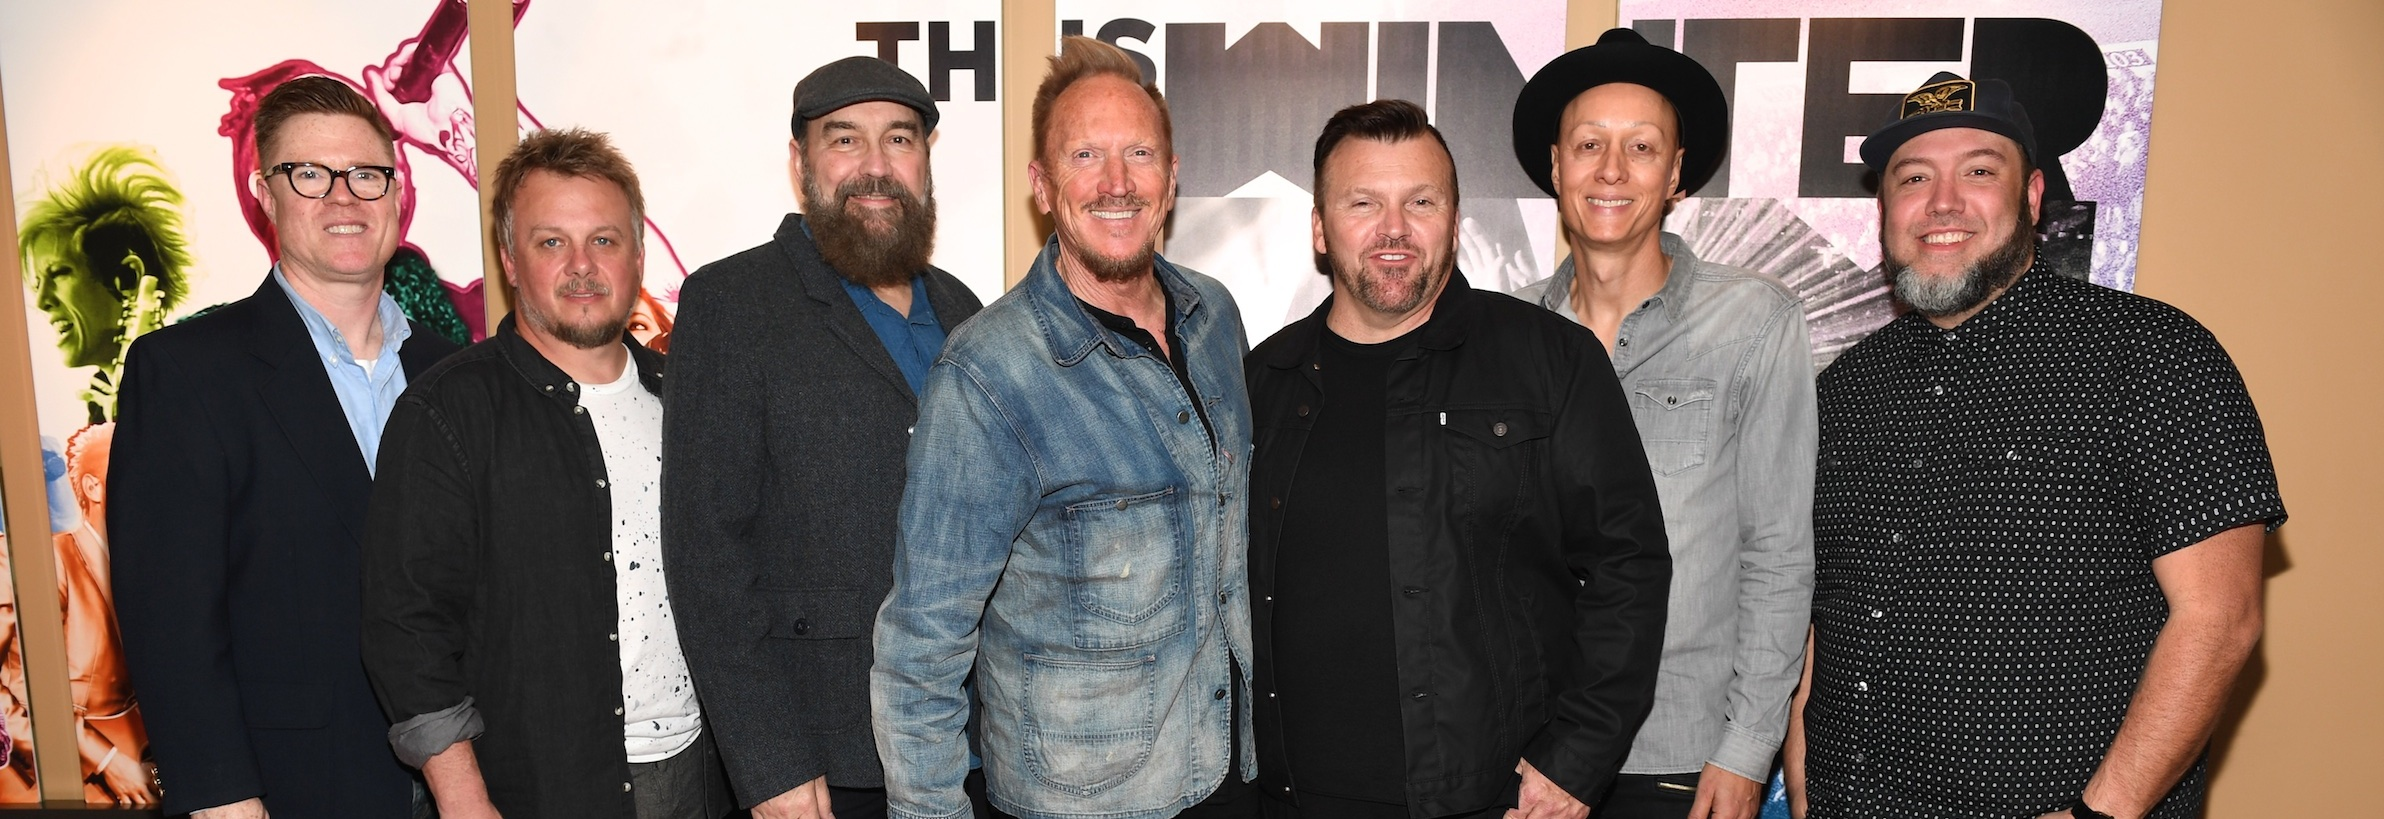 'THIS IS WINTER JAM' PREMIERES IN NASHVILLE AS HIGHLY ANTICIPATED FILM HITS THEATERS TUESDAY